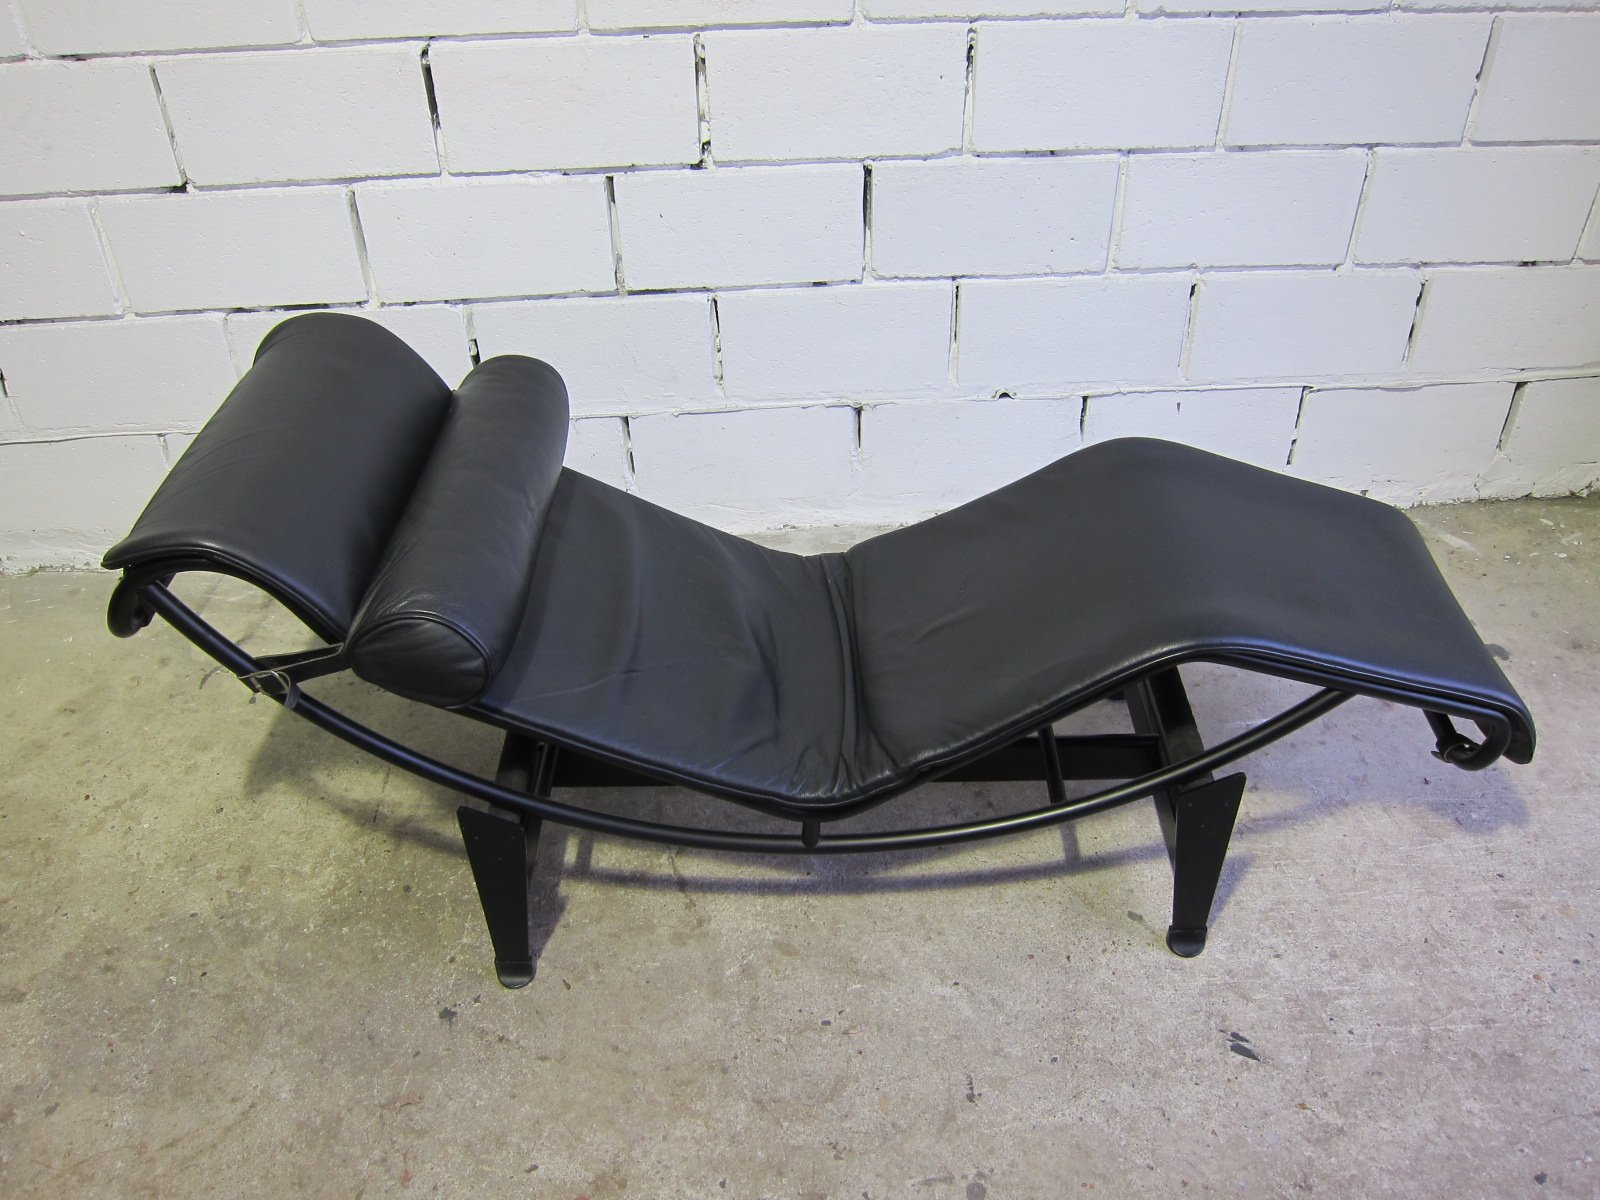 Vintage lc4 chaise lounge by le corbusier for cassina for Antique chaise lounge prices